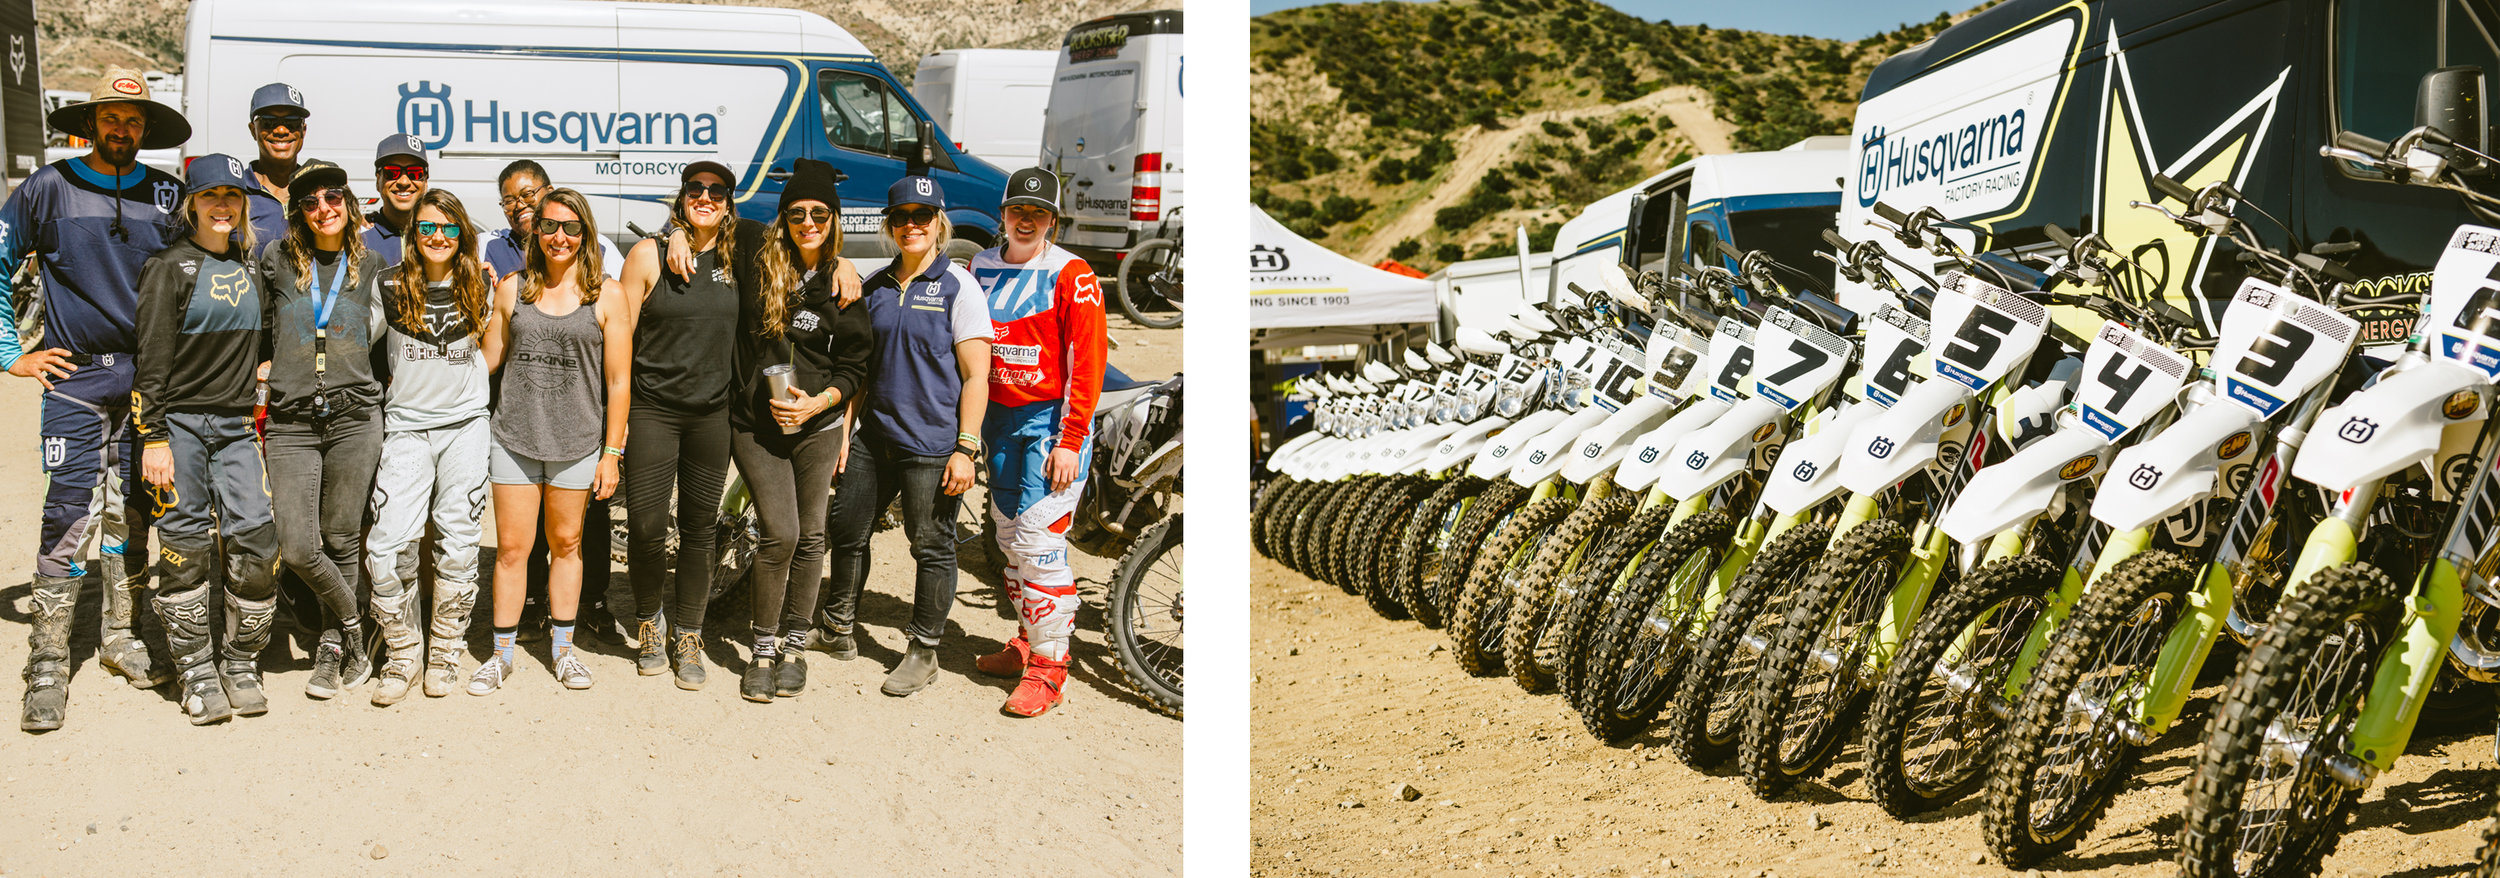 Husqvarna Motorcycles — Blog — BABES IN THE DIRT